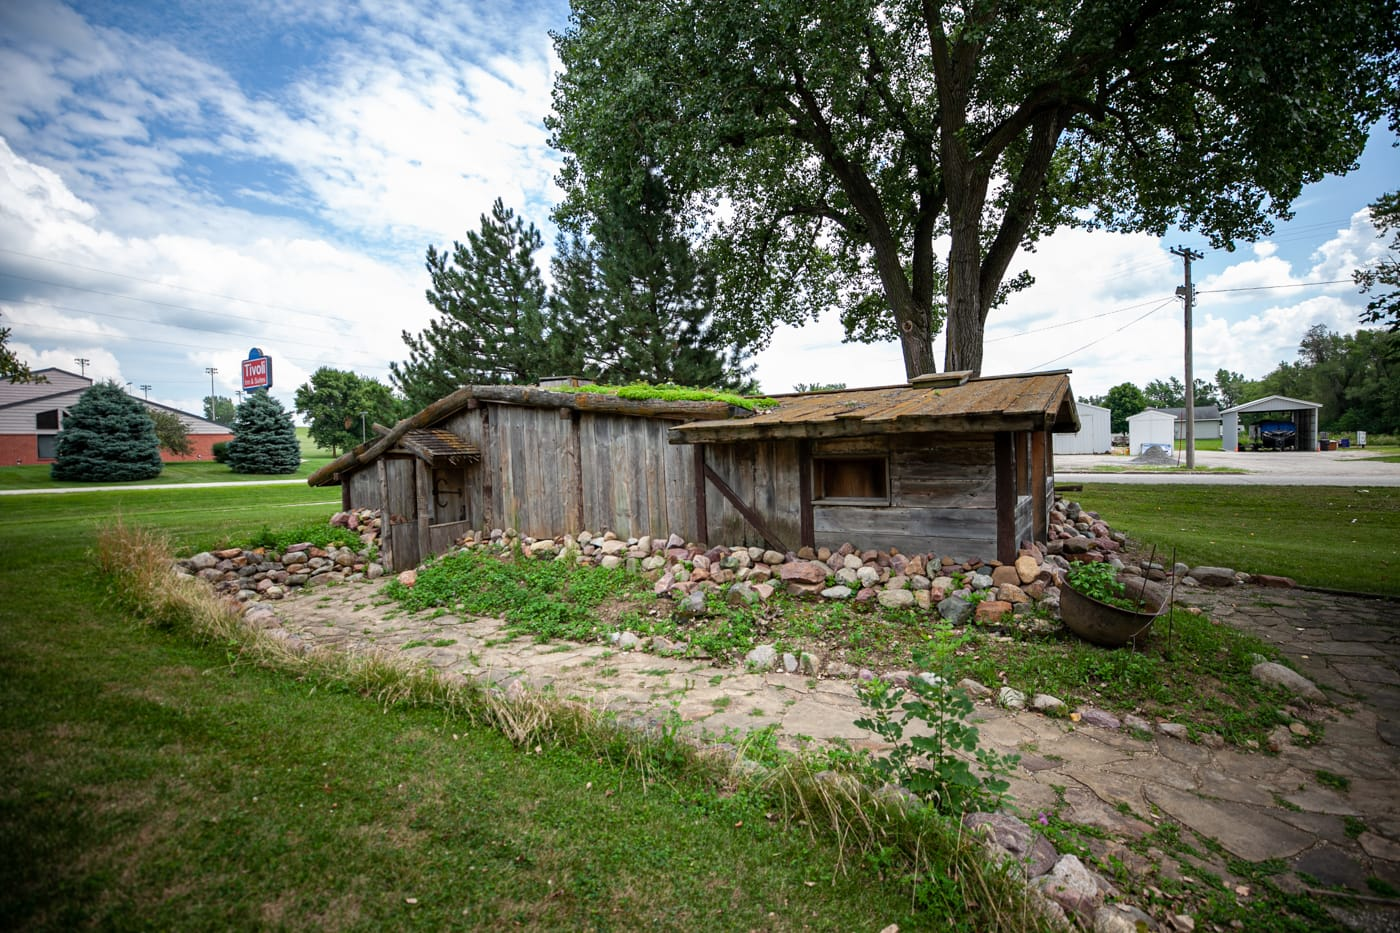 VikingHjem Viking House in Elk Horn, Iowa | Iowa Roadside Attractions